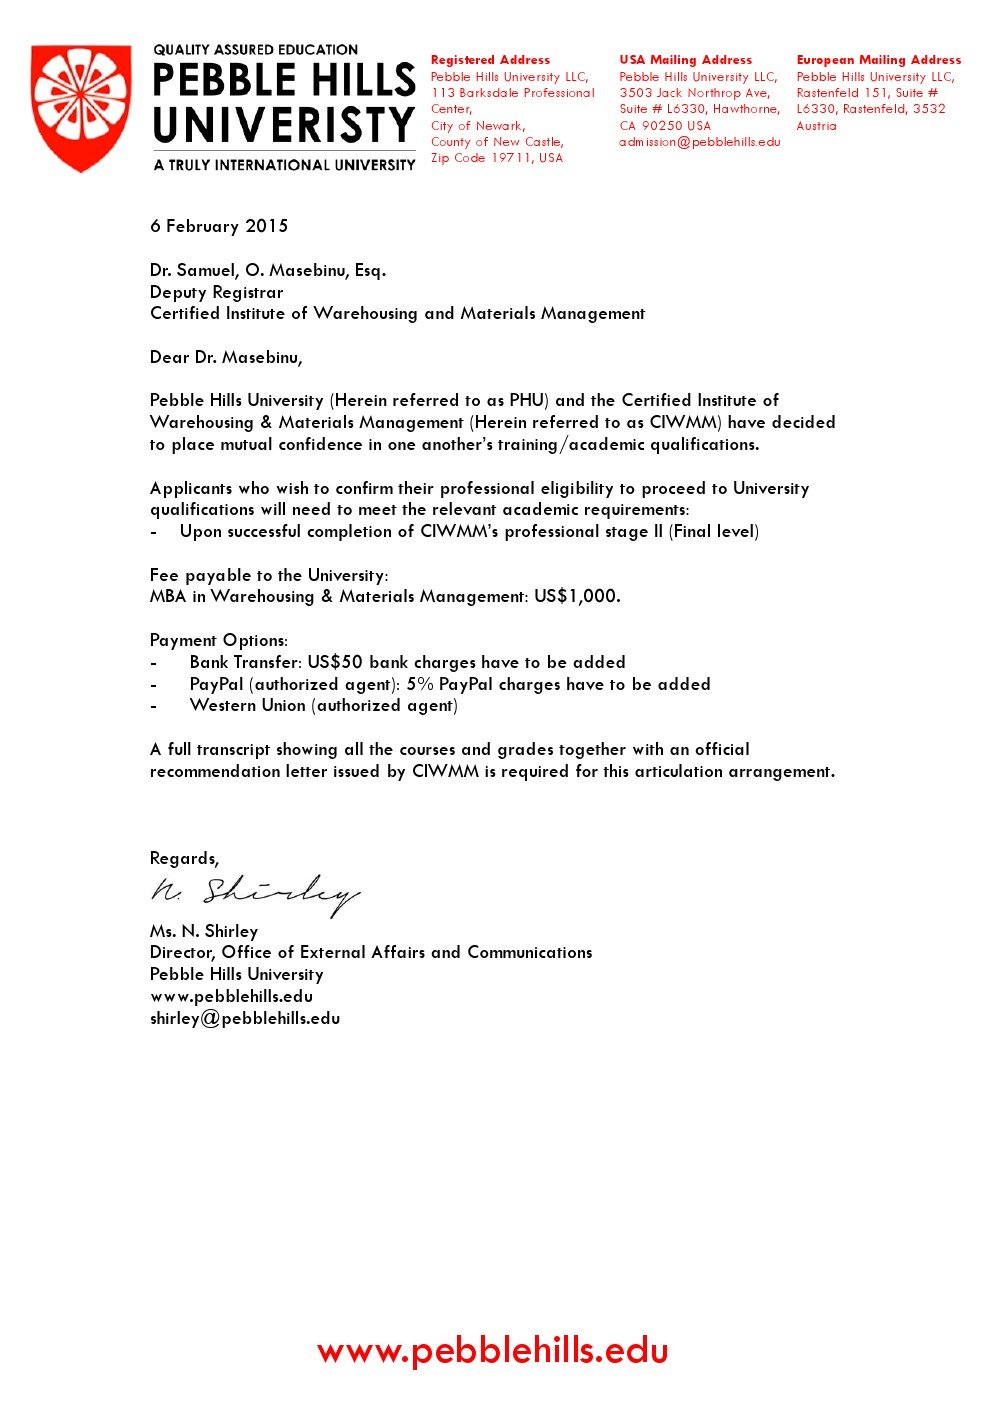 Letter to CIWMM